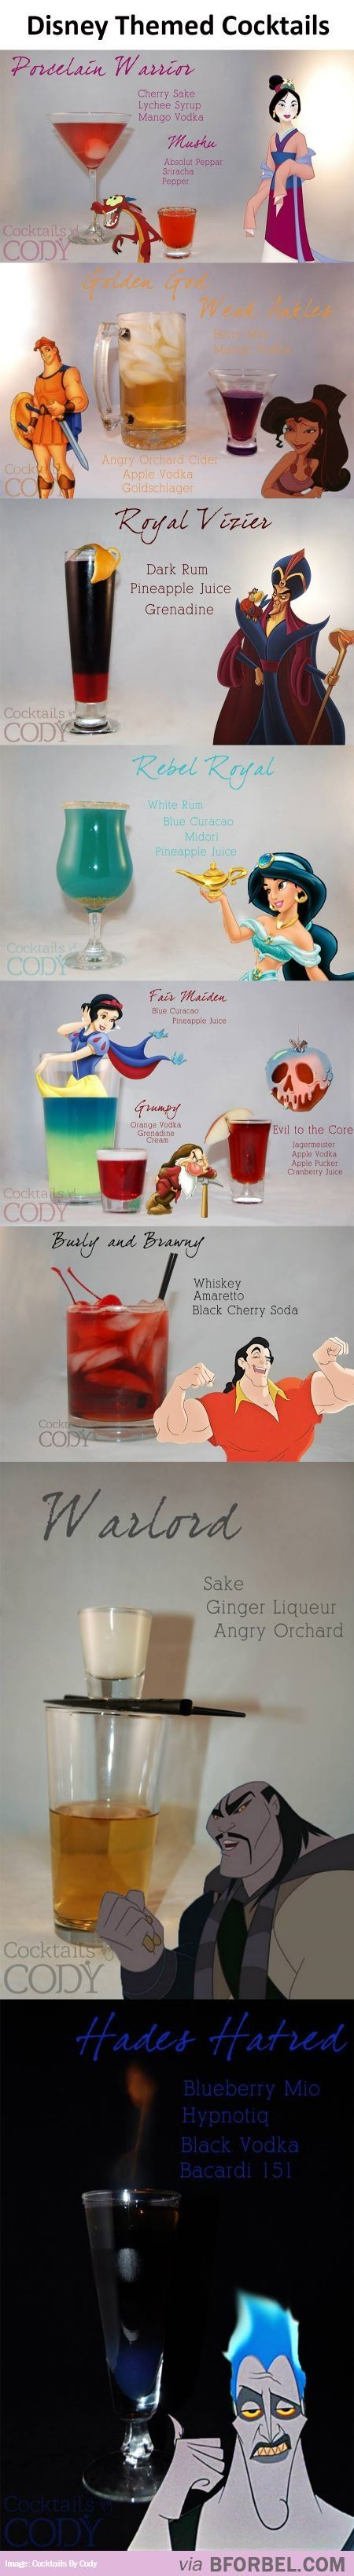 Disney inspired Alcoholic Beverages